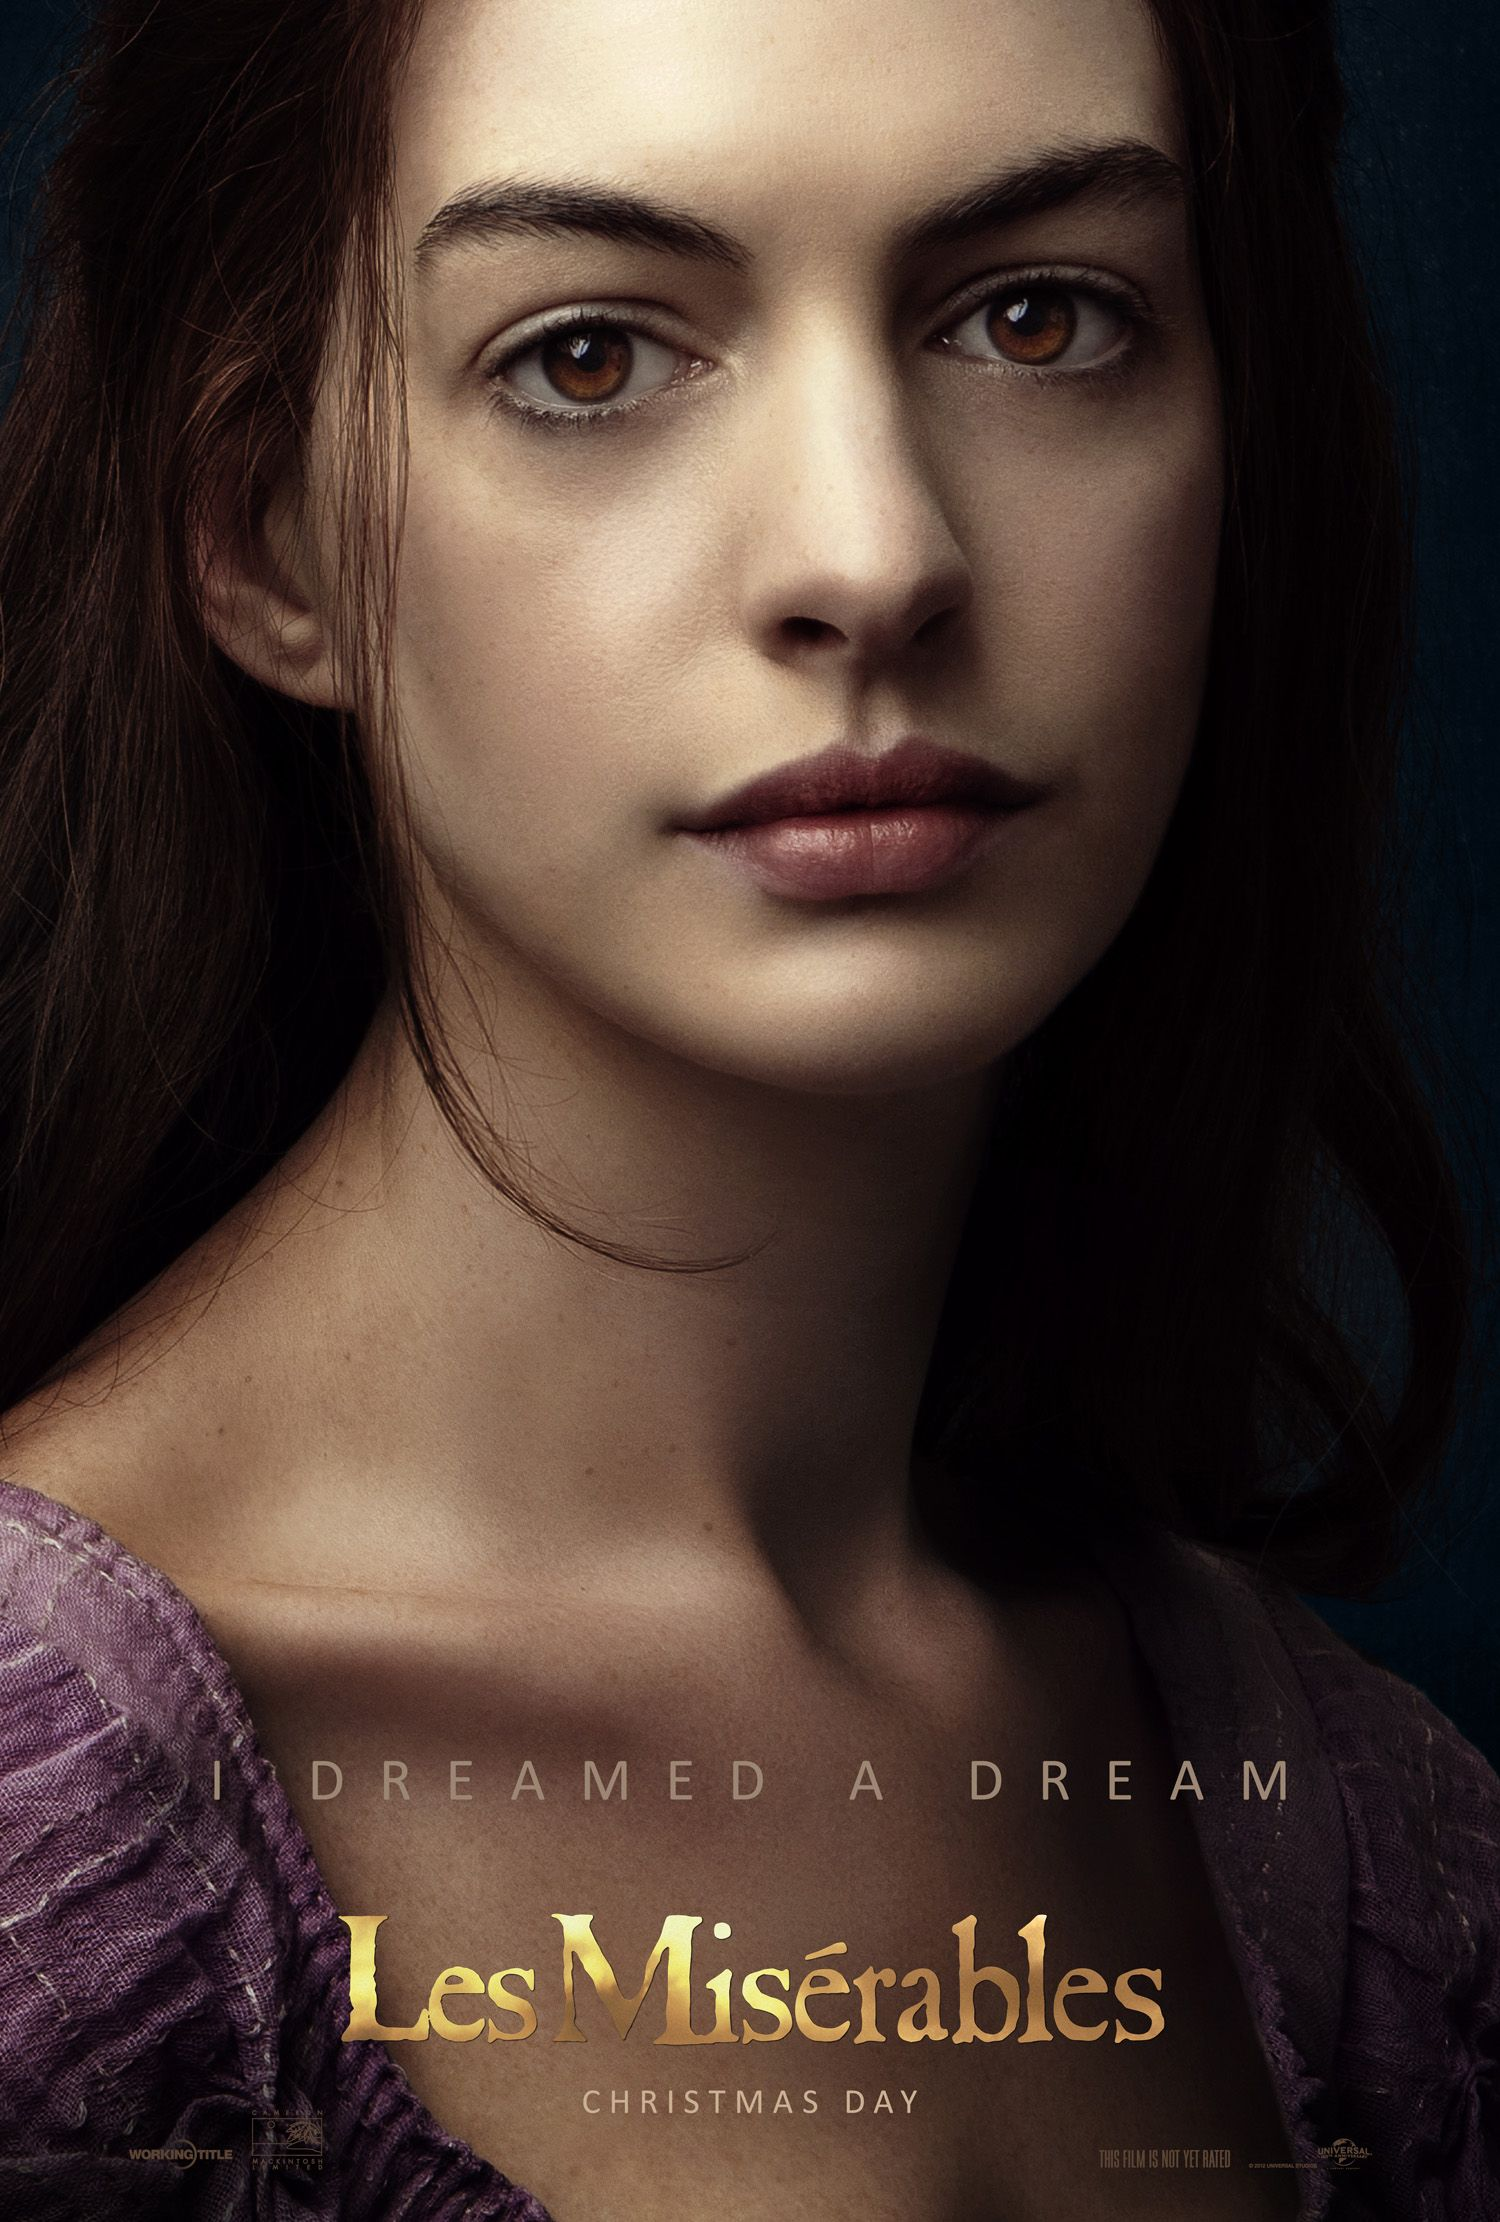 I Dreamed A Dream Anne Hathaway As Fantine In Lesmis This